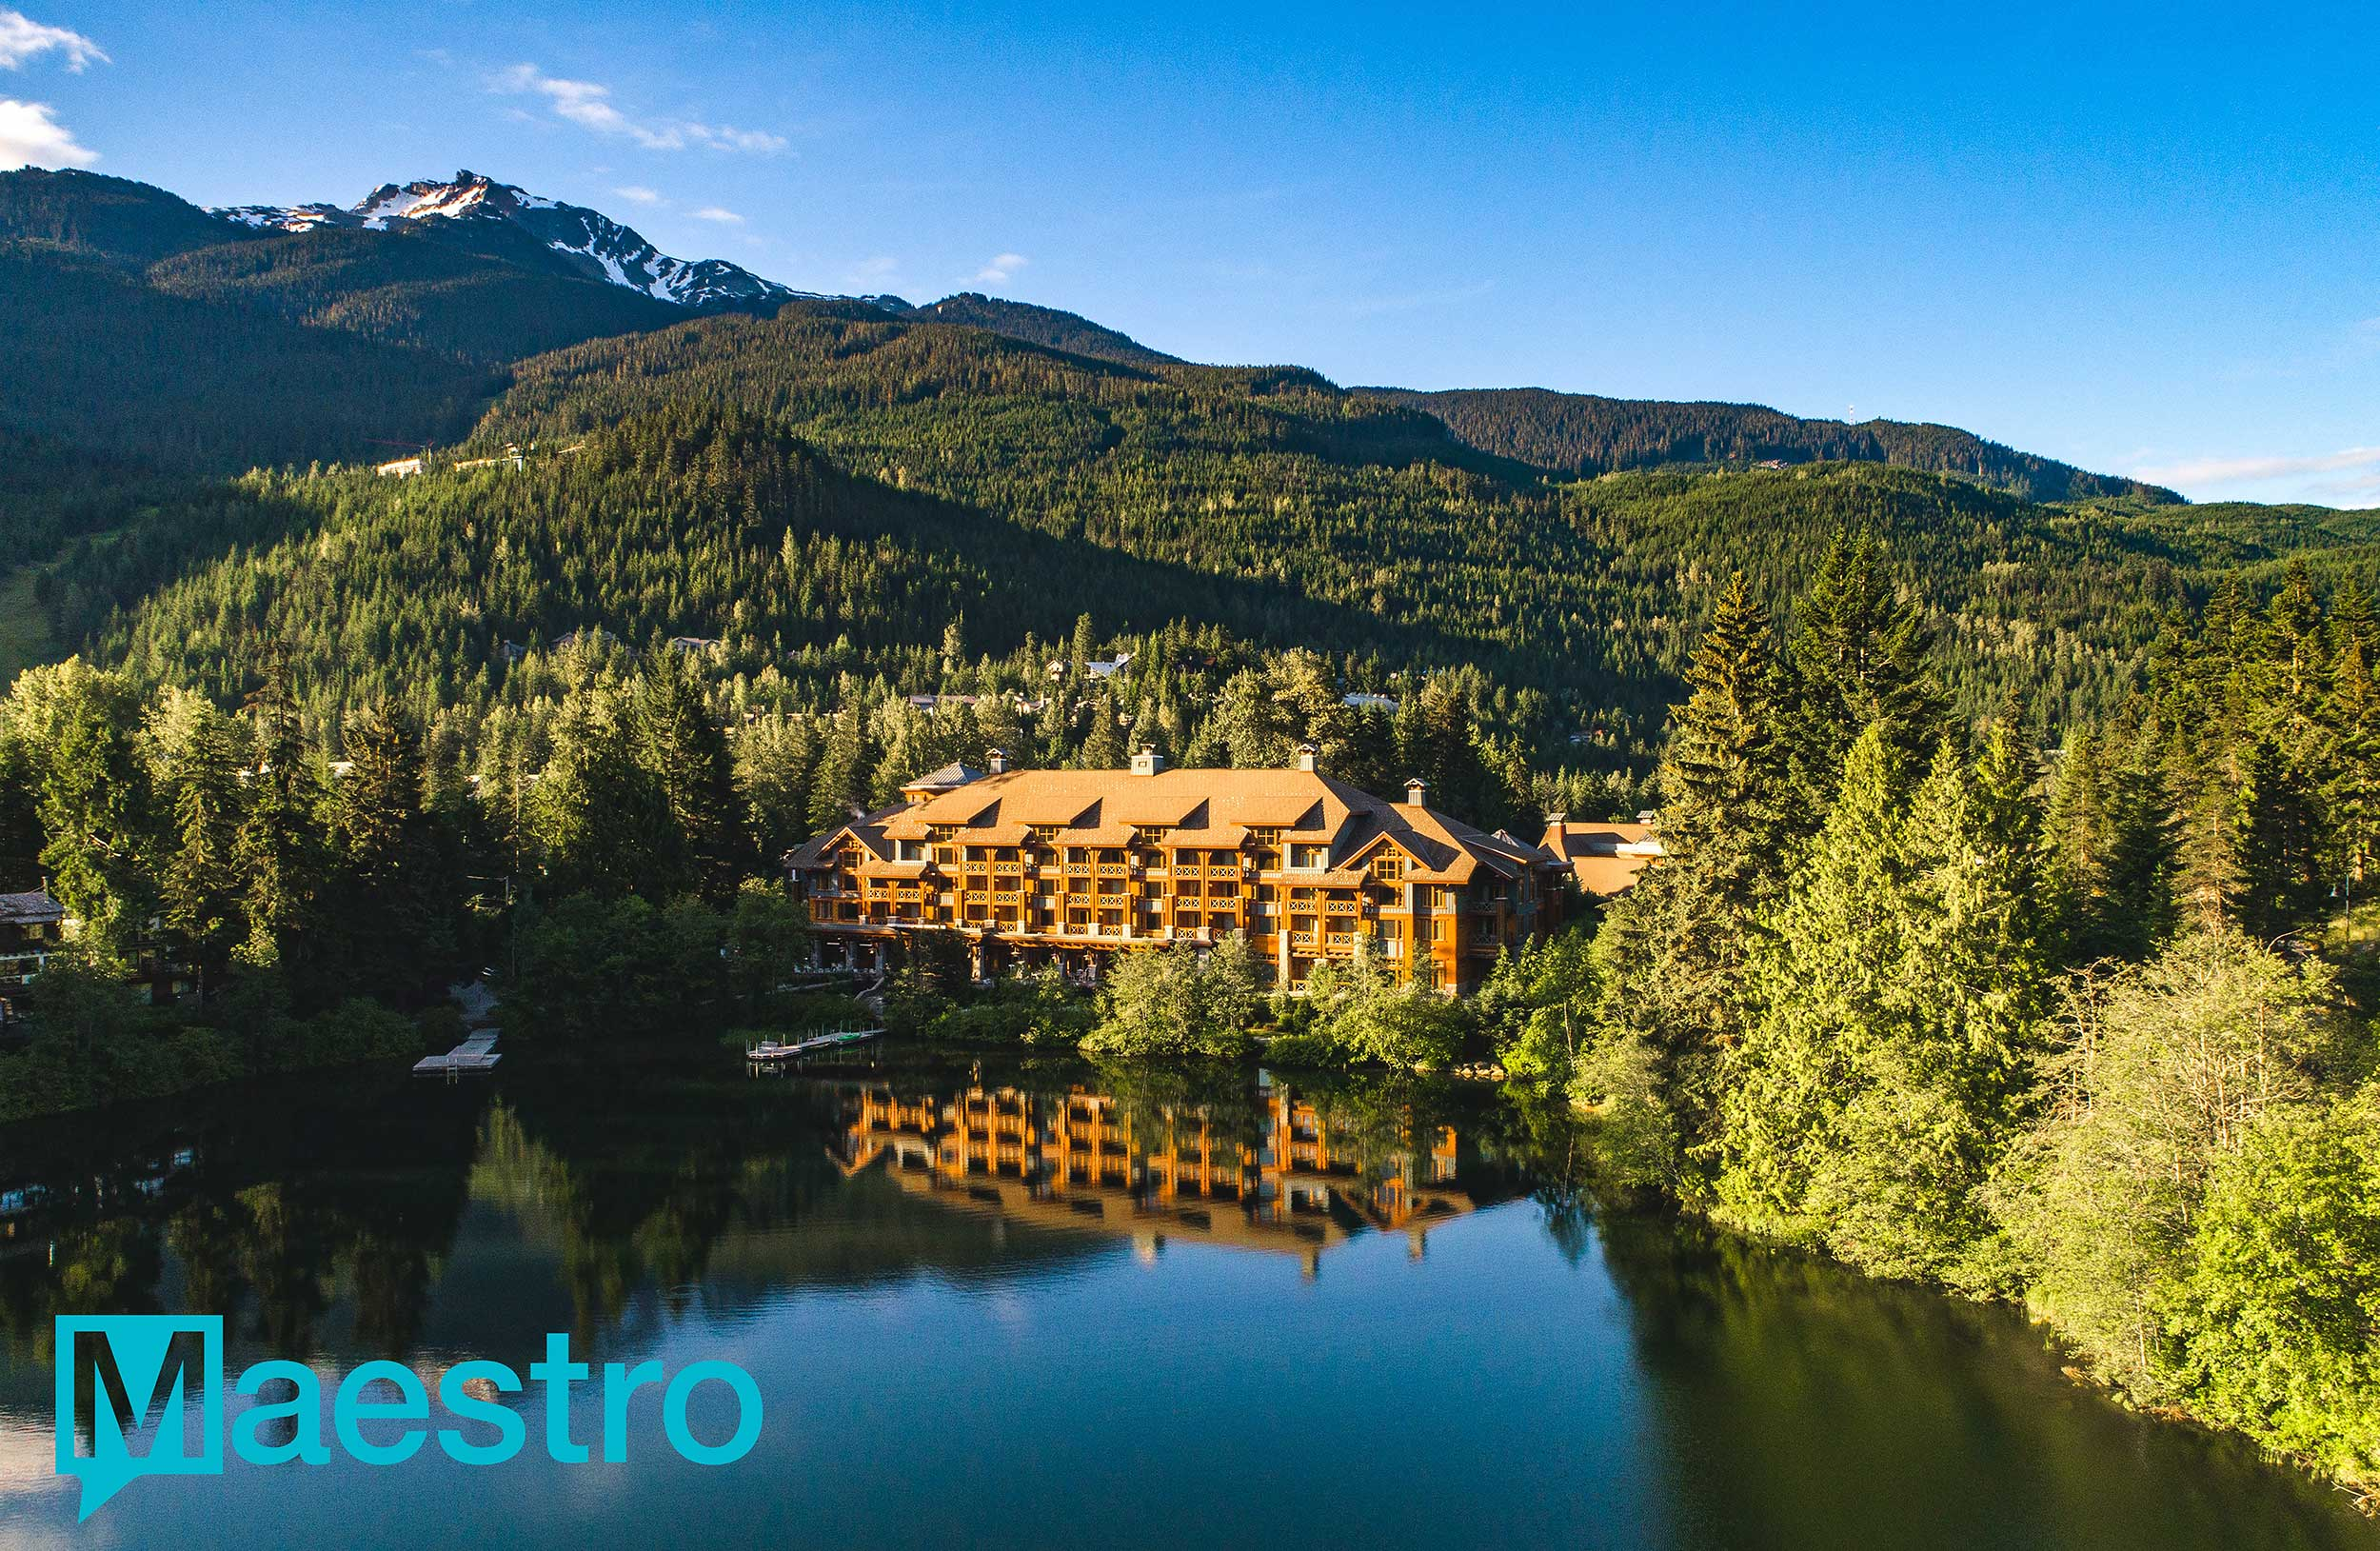 Pr june 22 v1 2 - Maestro PMS Streamlines Financial Management Processes for Award Winning Properties with Intuitive Hospitality's 'Hotel-In-A-Box' Integration - Innovative Property Management Software Solutions Powering Hotels, Resorts & Multi‑Property Groups.